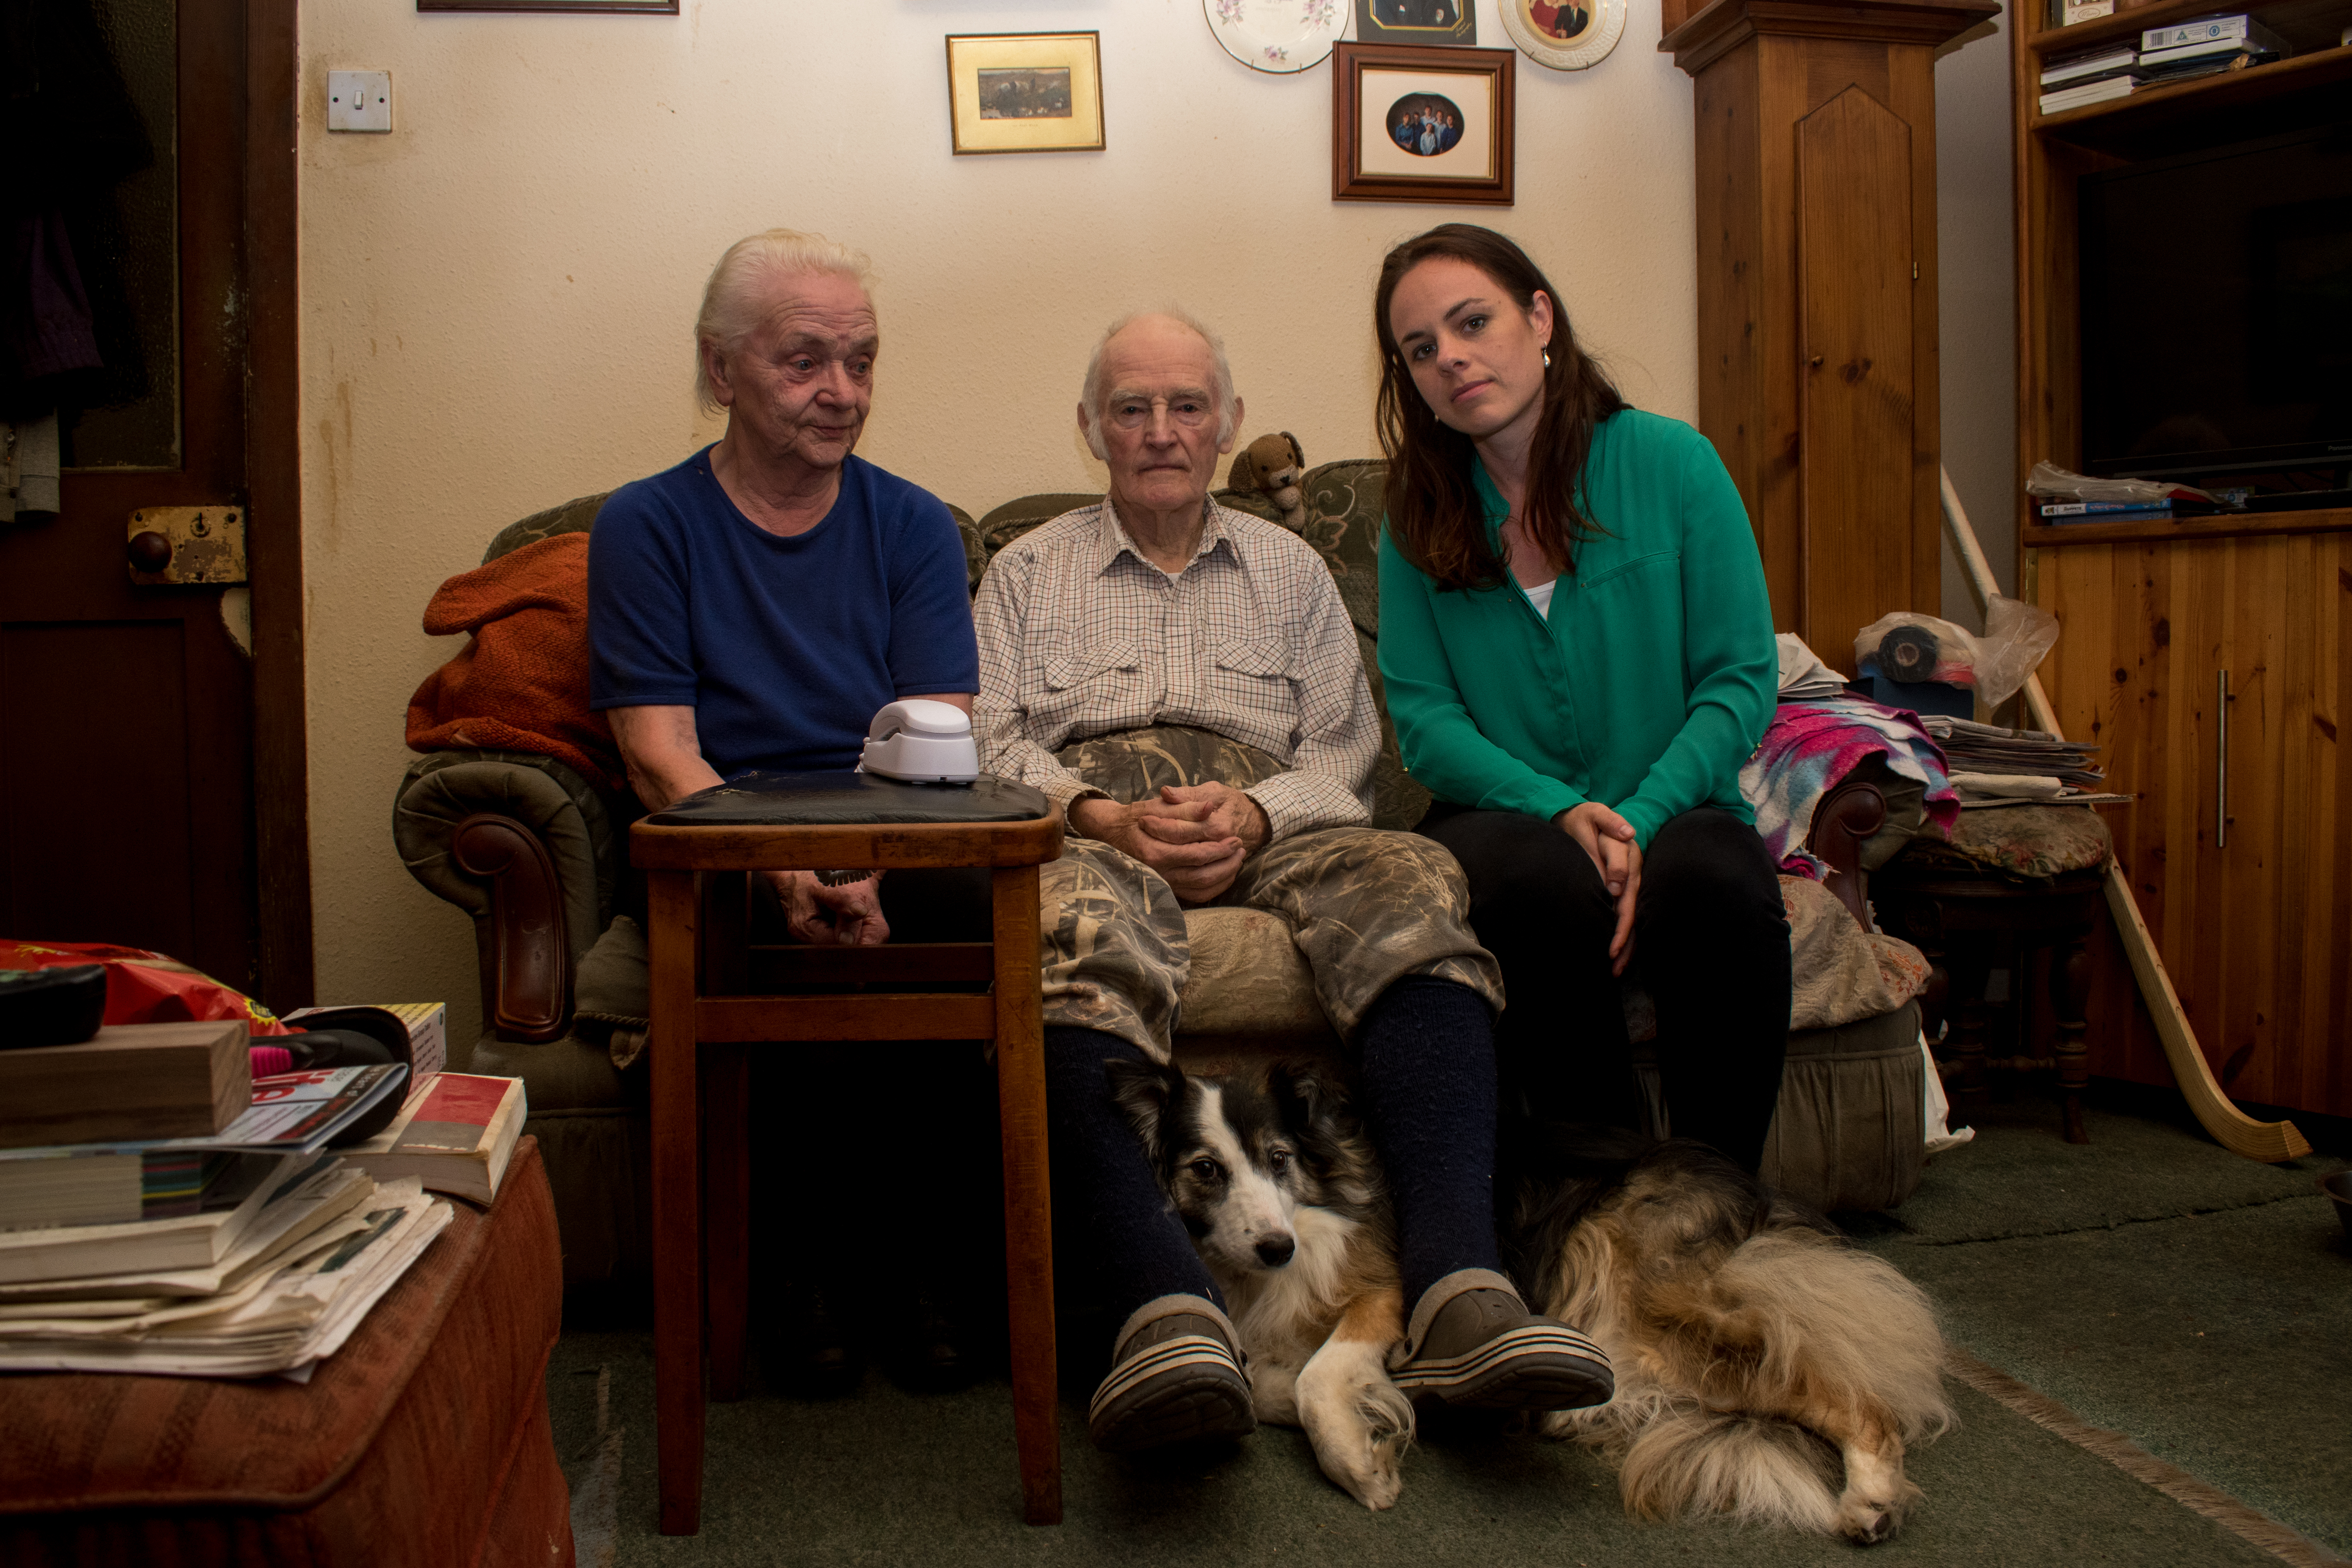 John and Mabel Sloggie have had their phone line restored after more than two months without service after raising concerns with Kate Forbes MSP